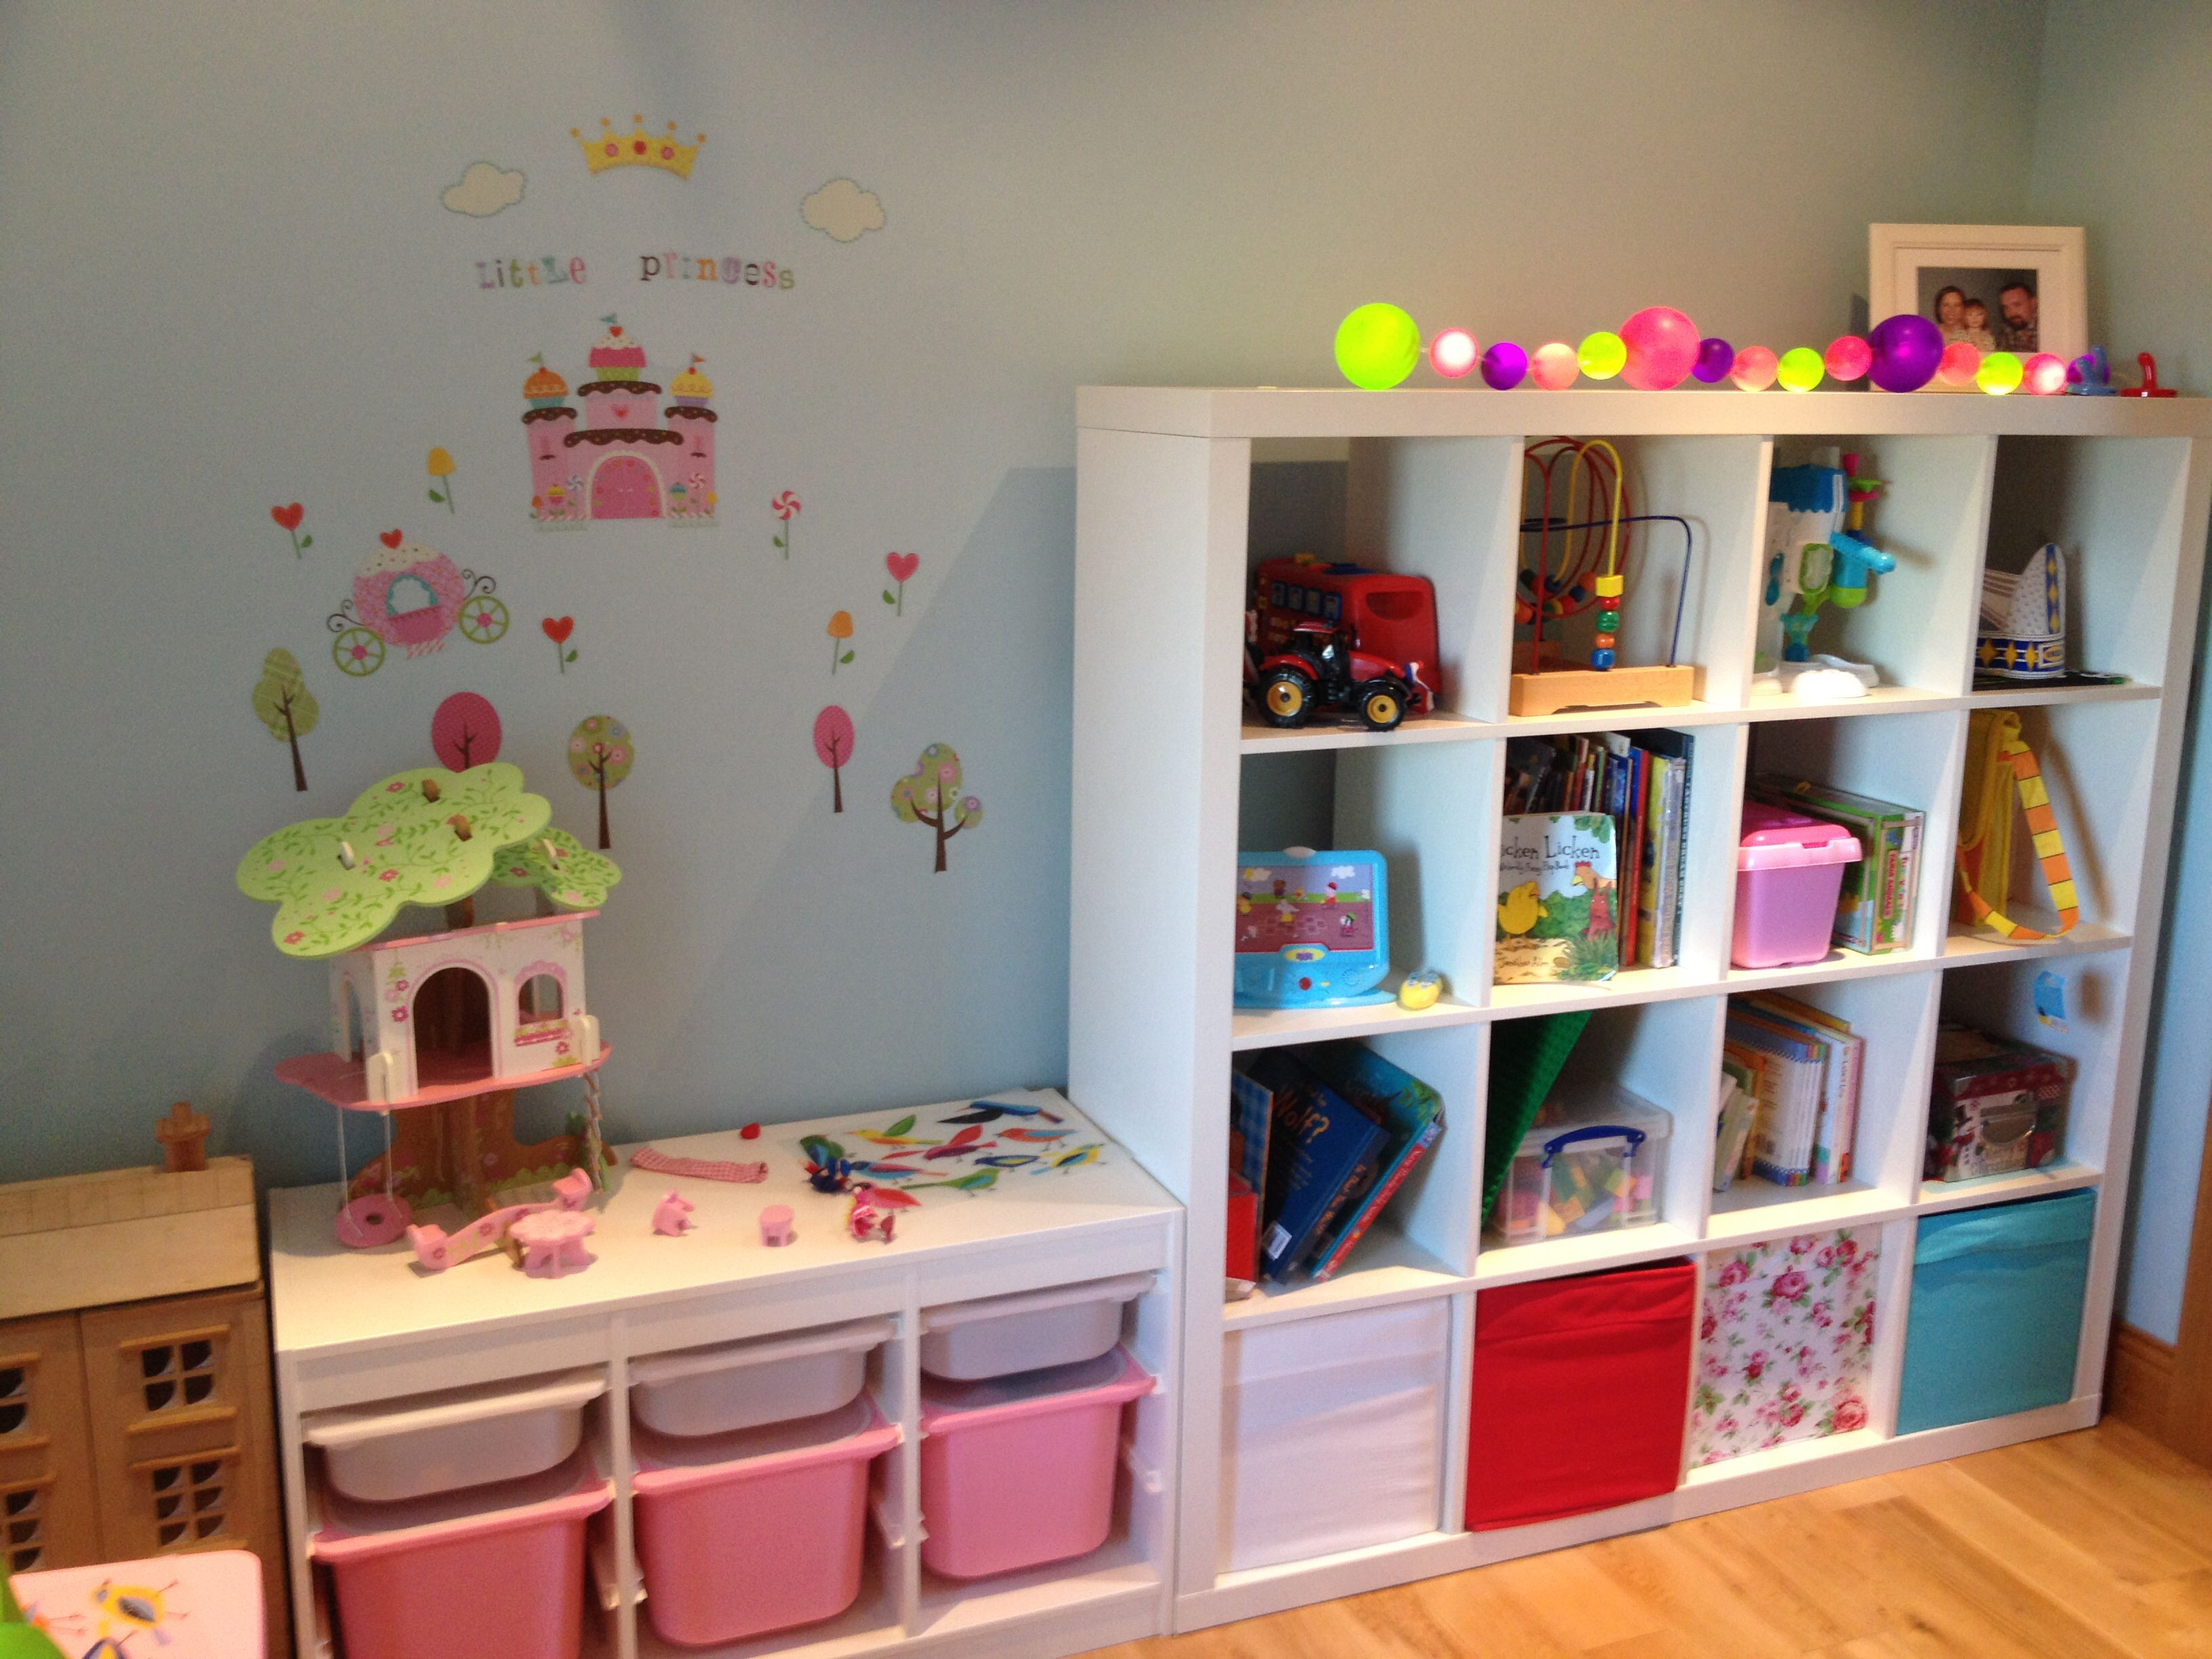 excellent ikea playroom ideas digital photography with kids rooms for girls and toys storage bins also - Kids Room Storage Bins